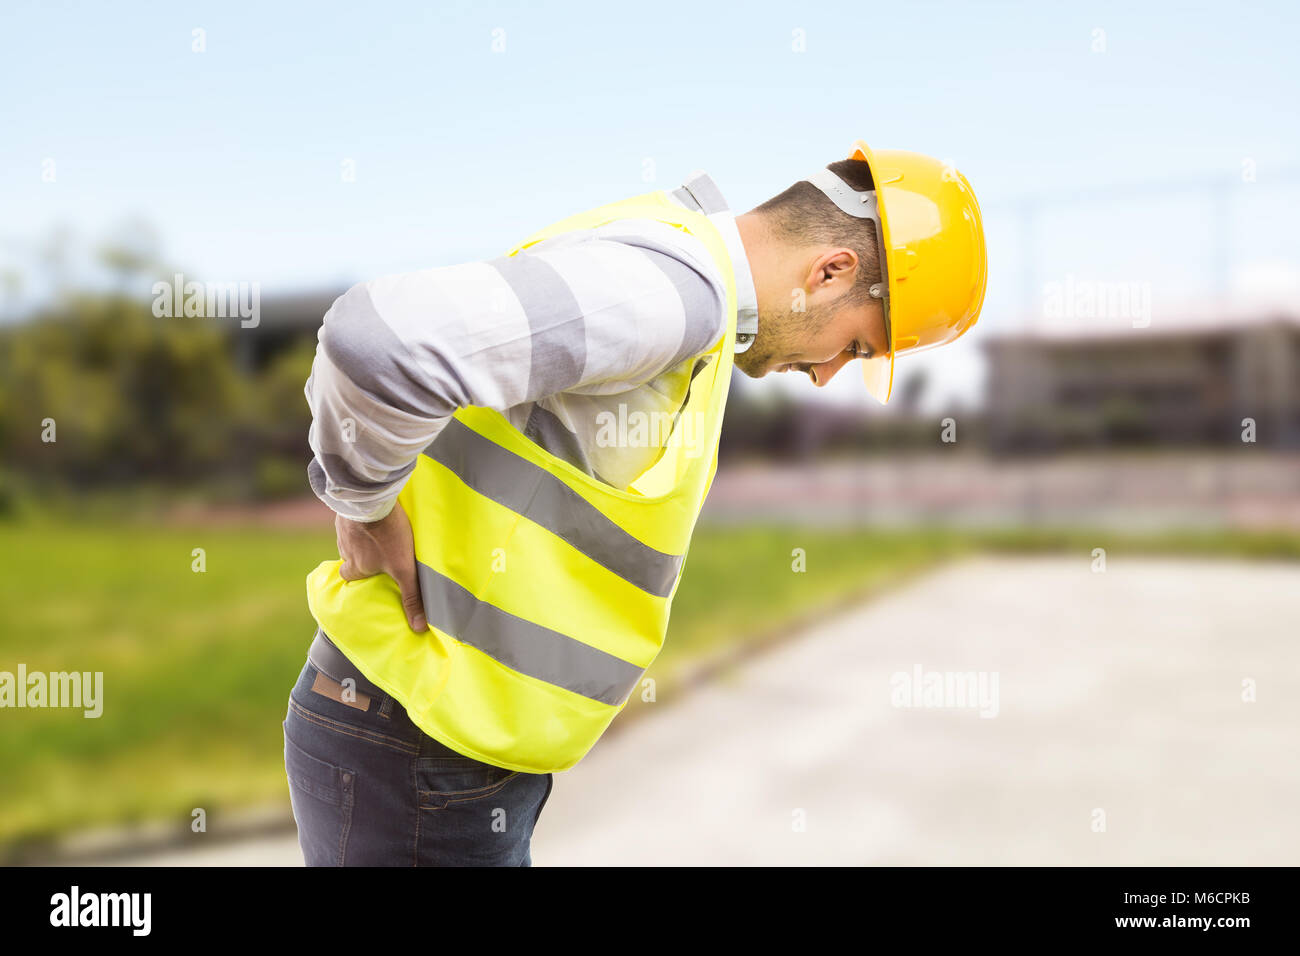 Construction worker feeling backpain in lumbar area pressing painful lower back and leaning forward - Stock Image